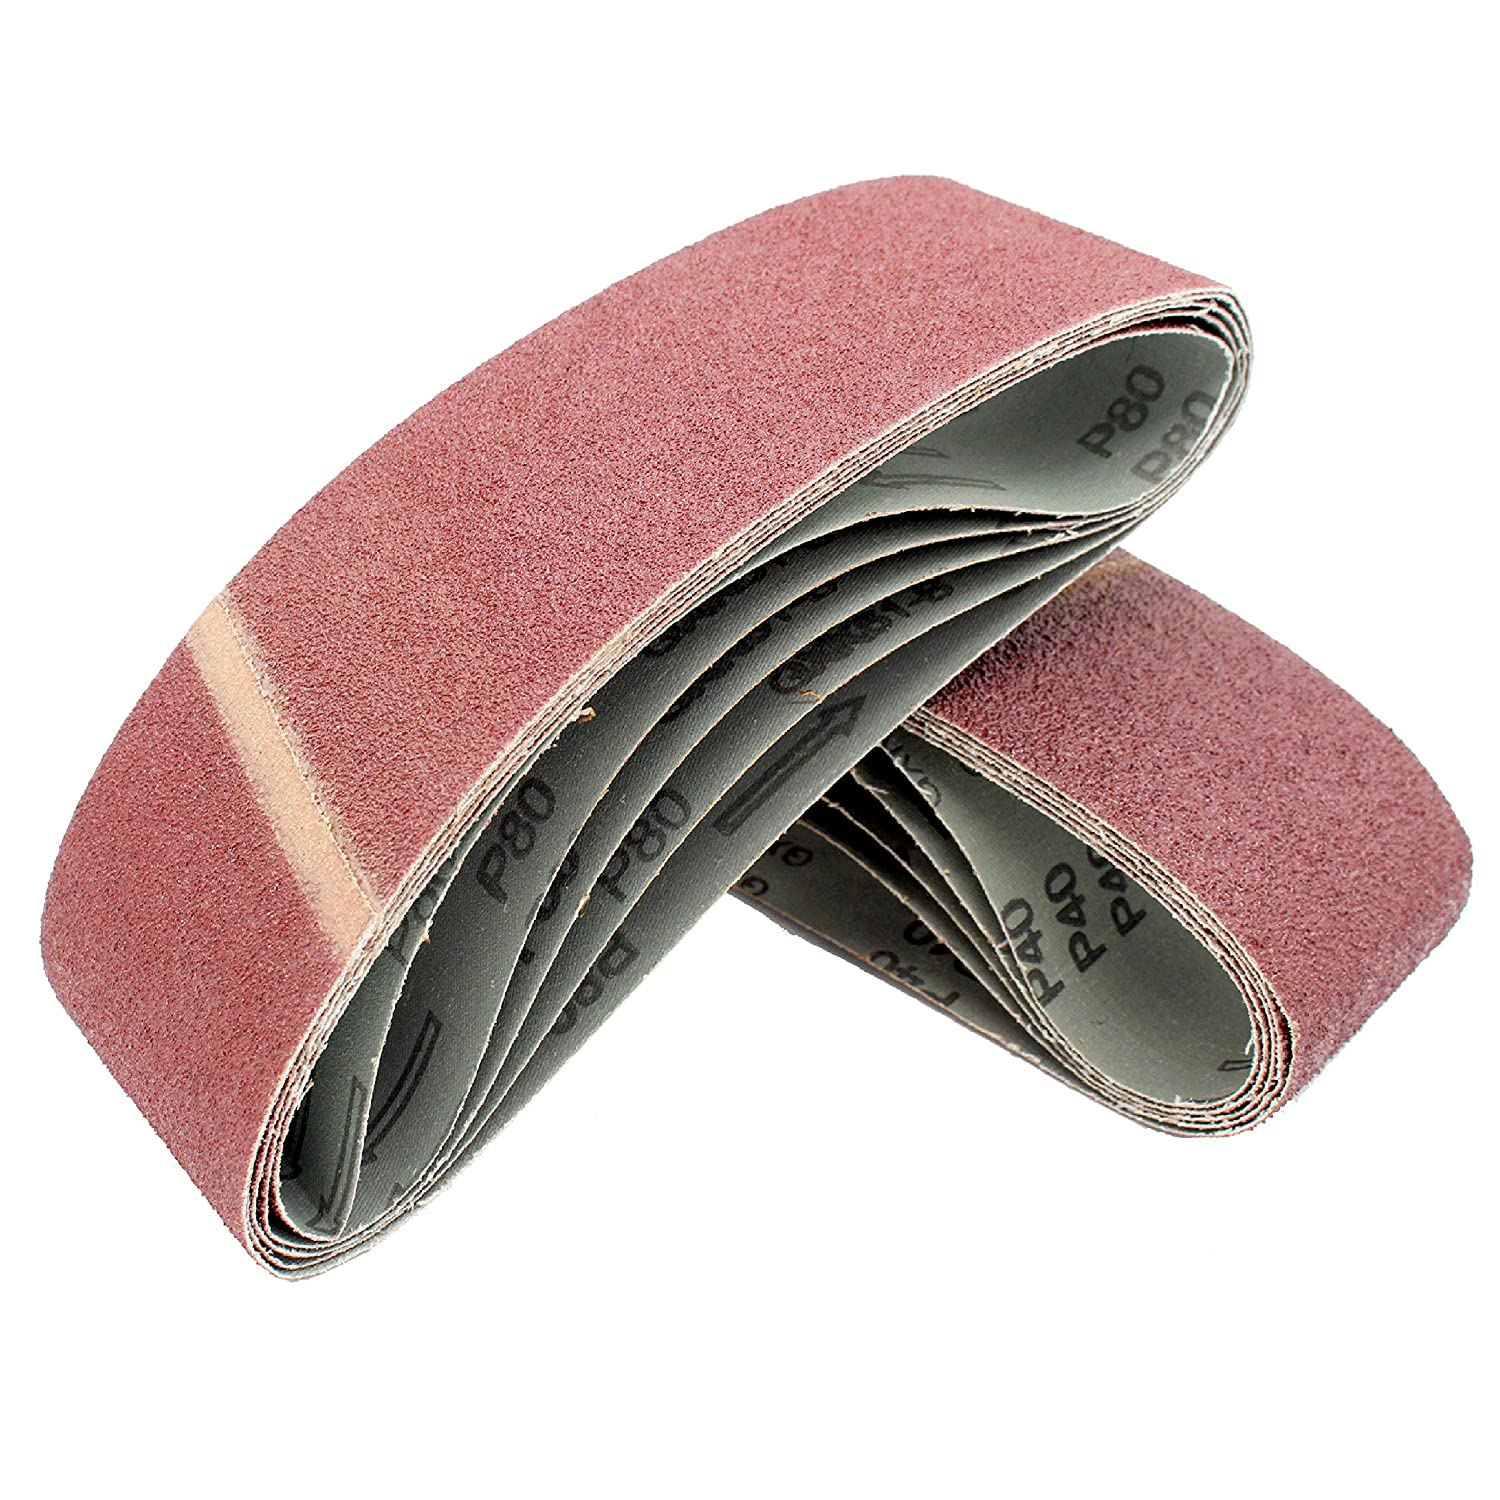 10 x Sanding Belts 120 Grit 75 x 533 mm